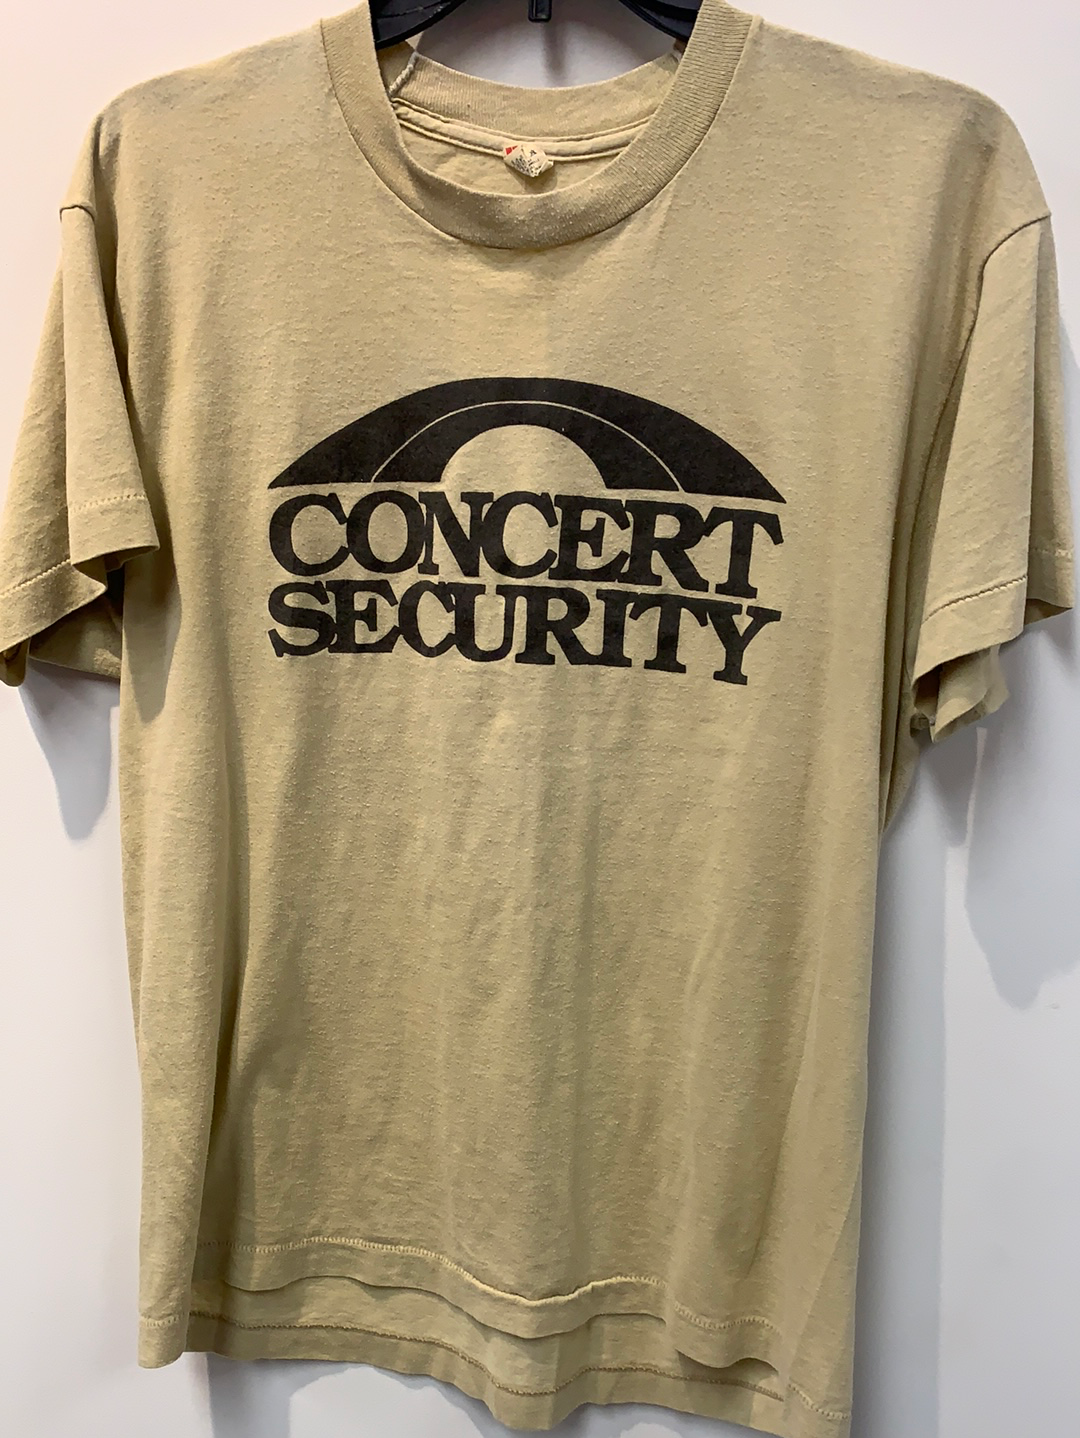 Extremely Rare Vintage Bruce Springsteen Concert Security T-shirt TS129